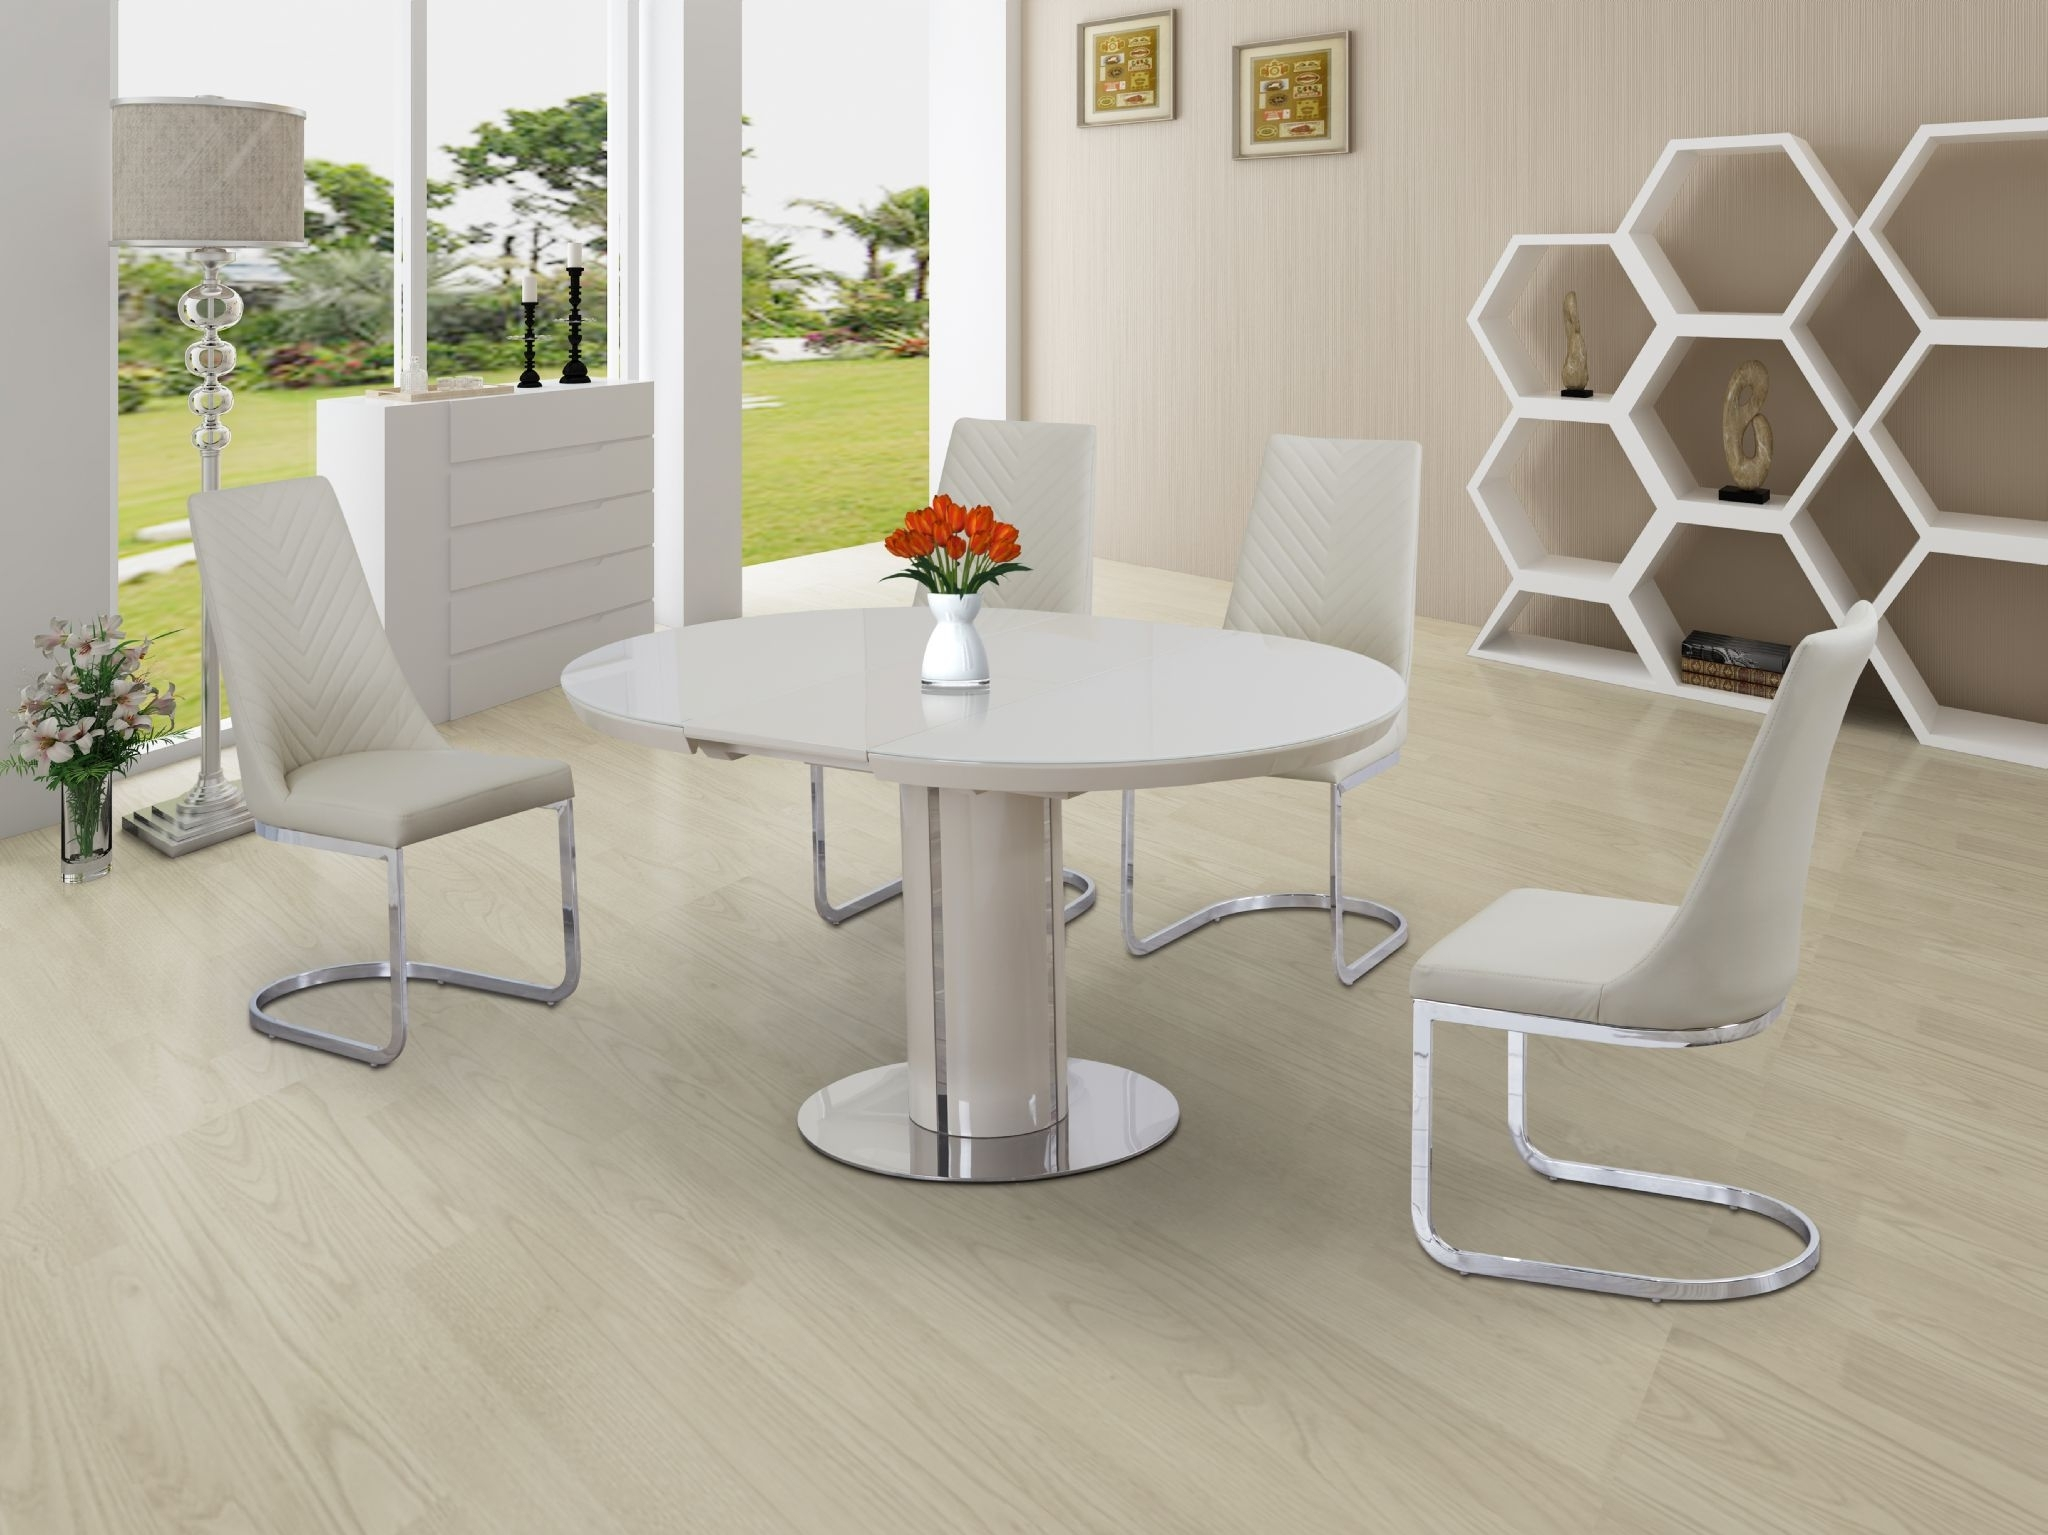 Eclipse Round Oval Gloss & Glass Extending 110 To 145 Cm Dining Within Latest Round Dining Tables Extends To Oval (View 4 of 25)